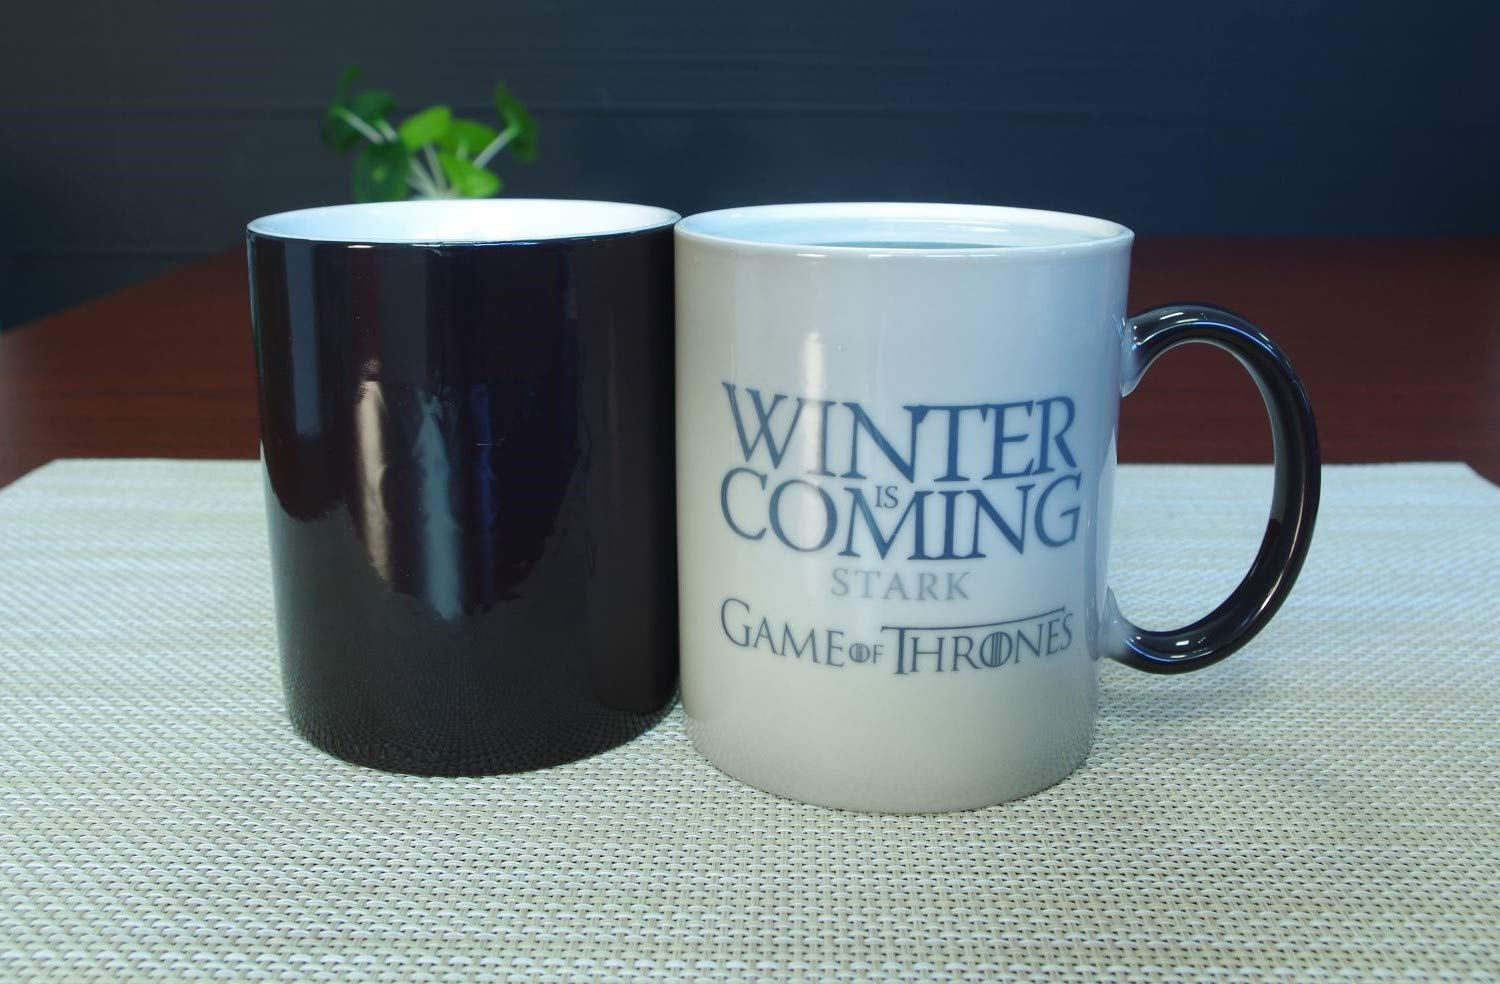 Game Of Thrones Mug - Color Changing 11oz Premium Mug Gift - Winter is Coming - Stark - by Fast and Produce